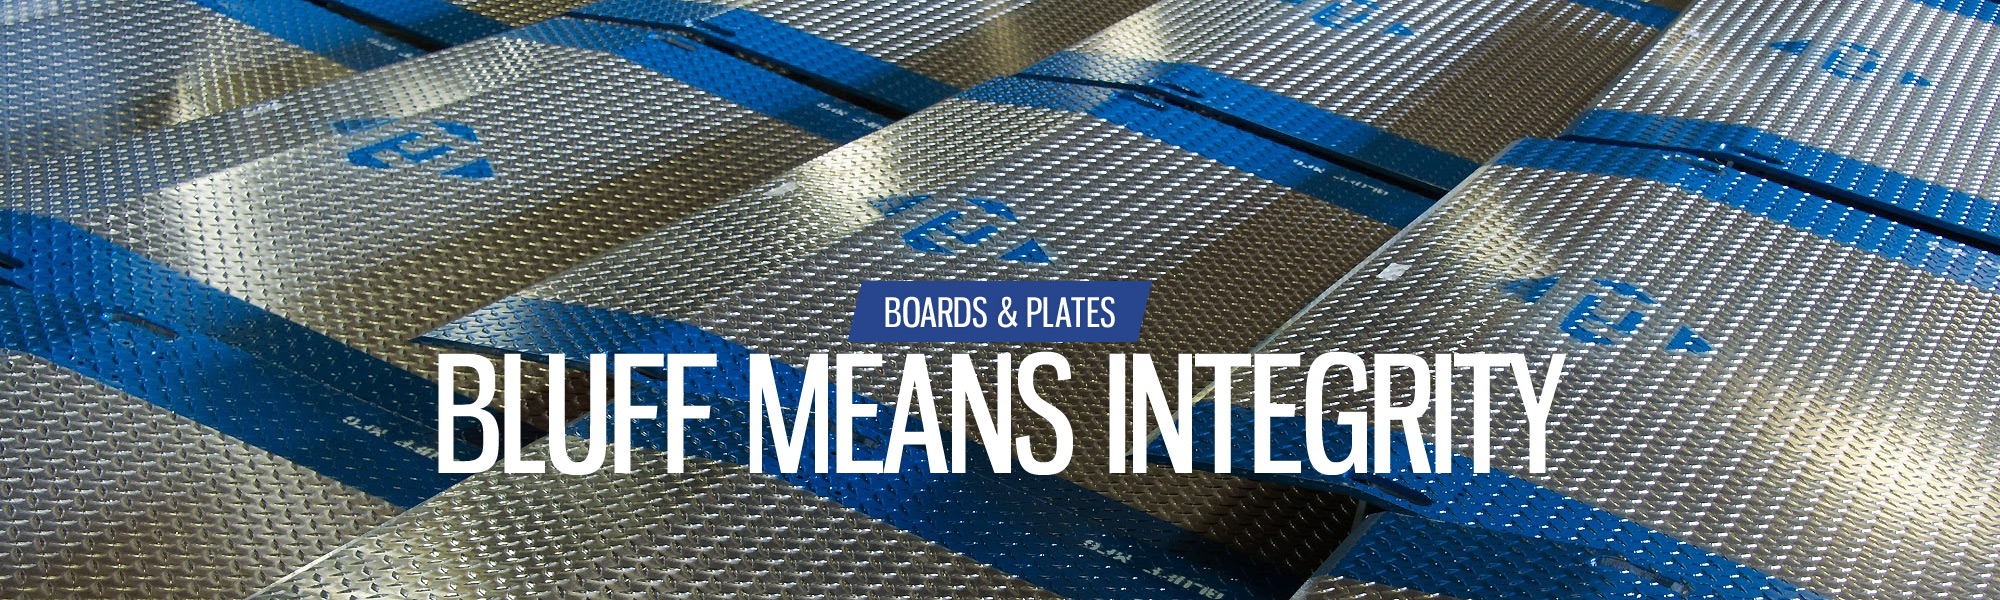 Yard Ramps | Dock Plates | Dock Boards | Mezzanines | Steel Dock Board